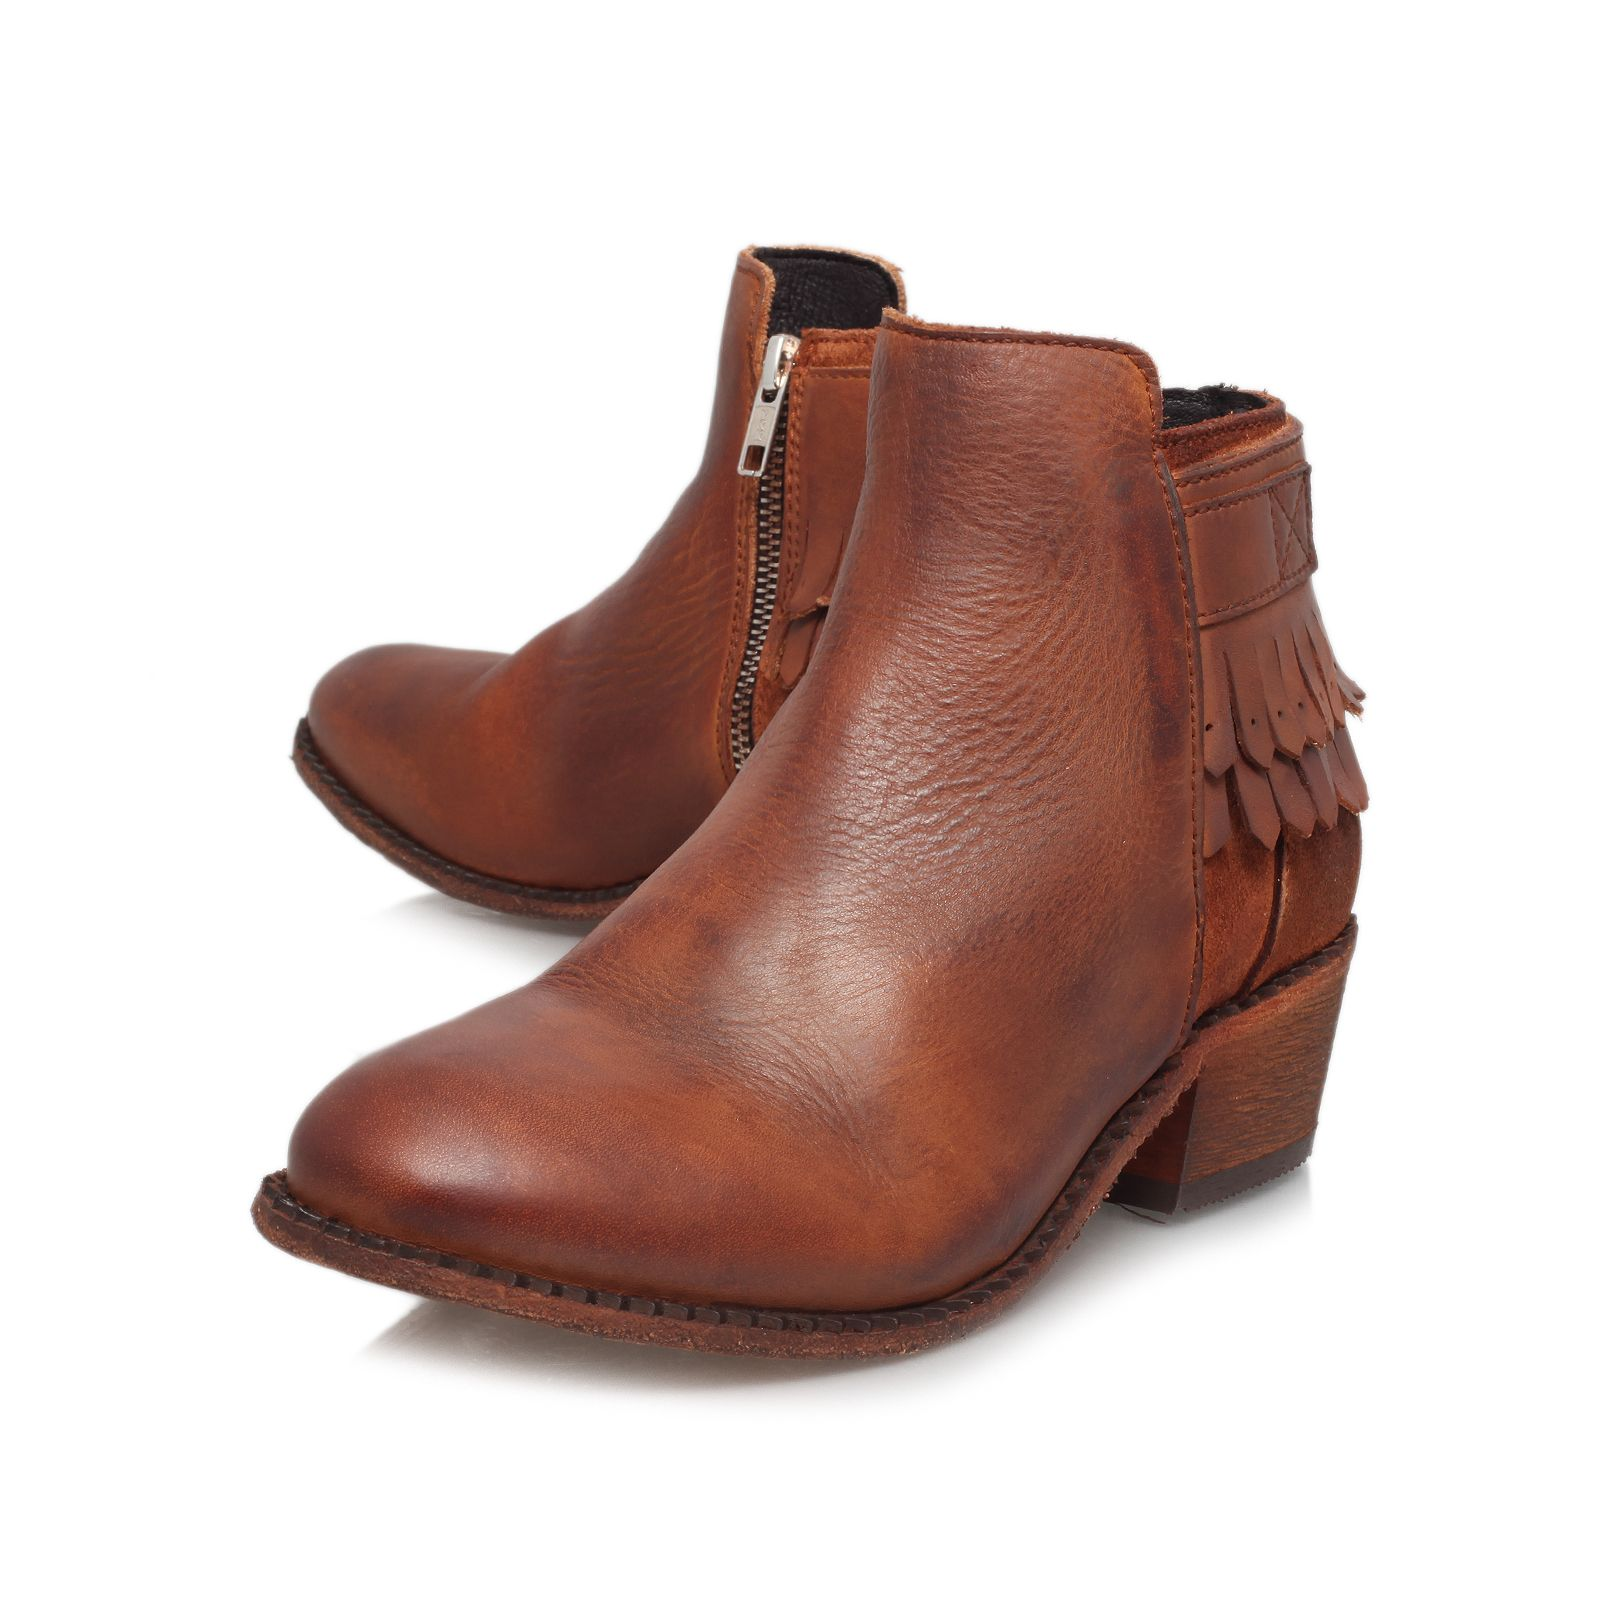 Core ankle boots